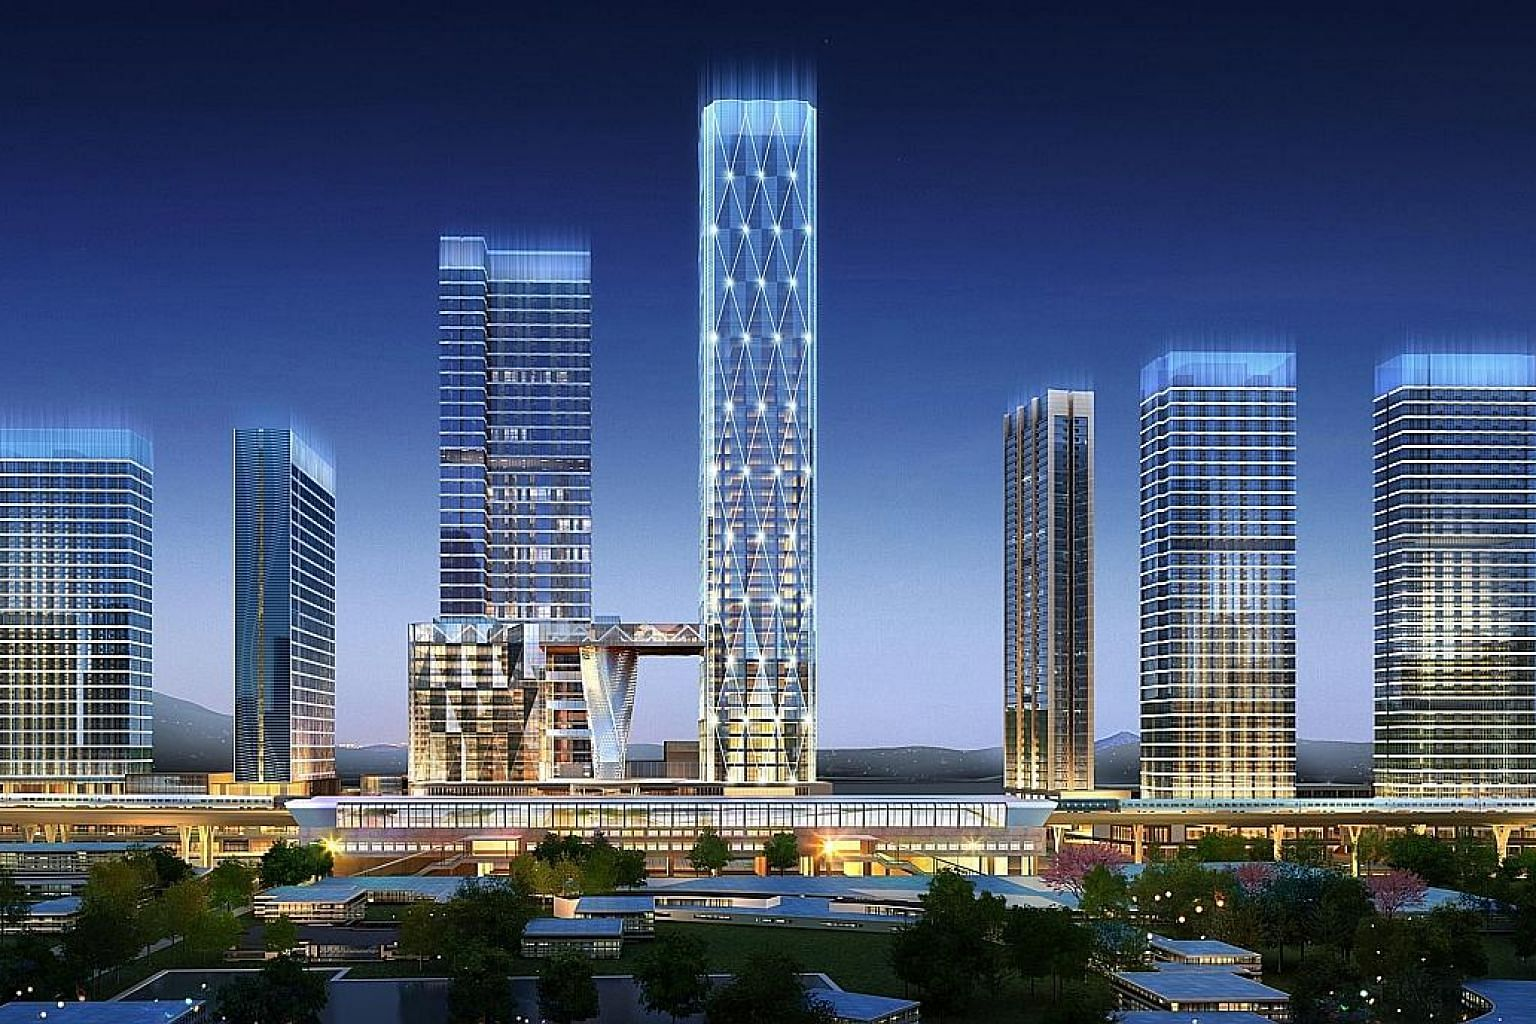 Logan Property's Logan Carat Complex, an integrated development in Shenzhen. The firm, which recently placed a record bid of slightly over $1 billion with Nanshan Group for a Stirling Road site, says it has been paying close attention to certain over